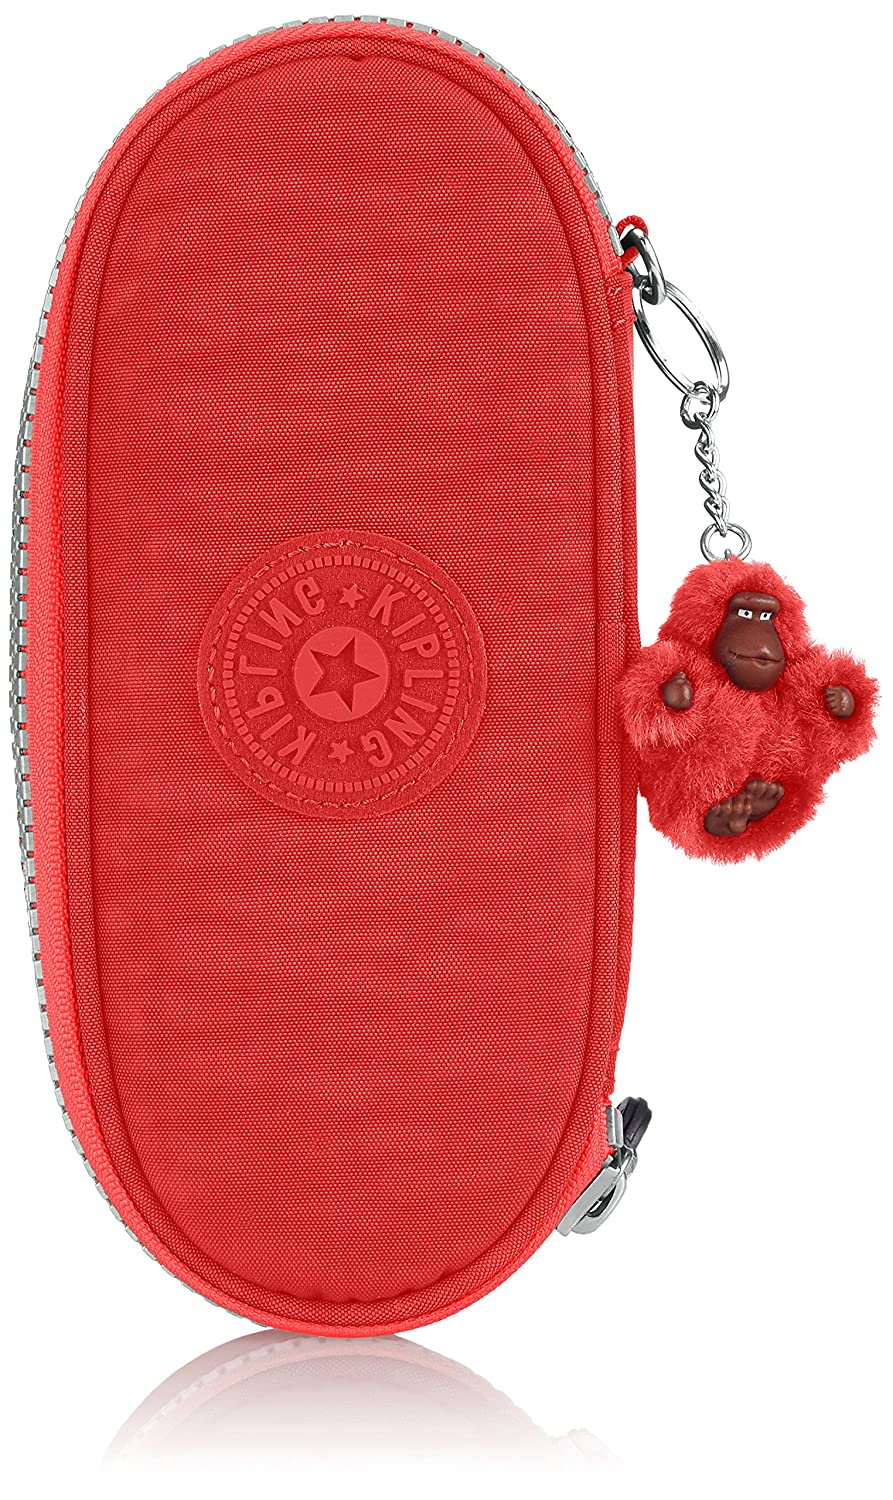 Amazon.com: Kipling Pencil Cases, 25 cm, Orange ...